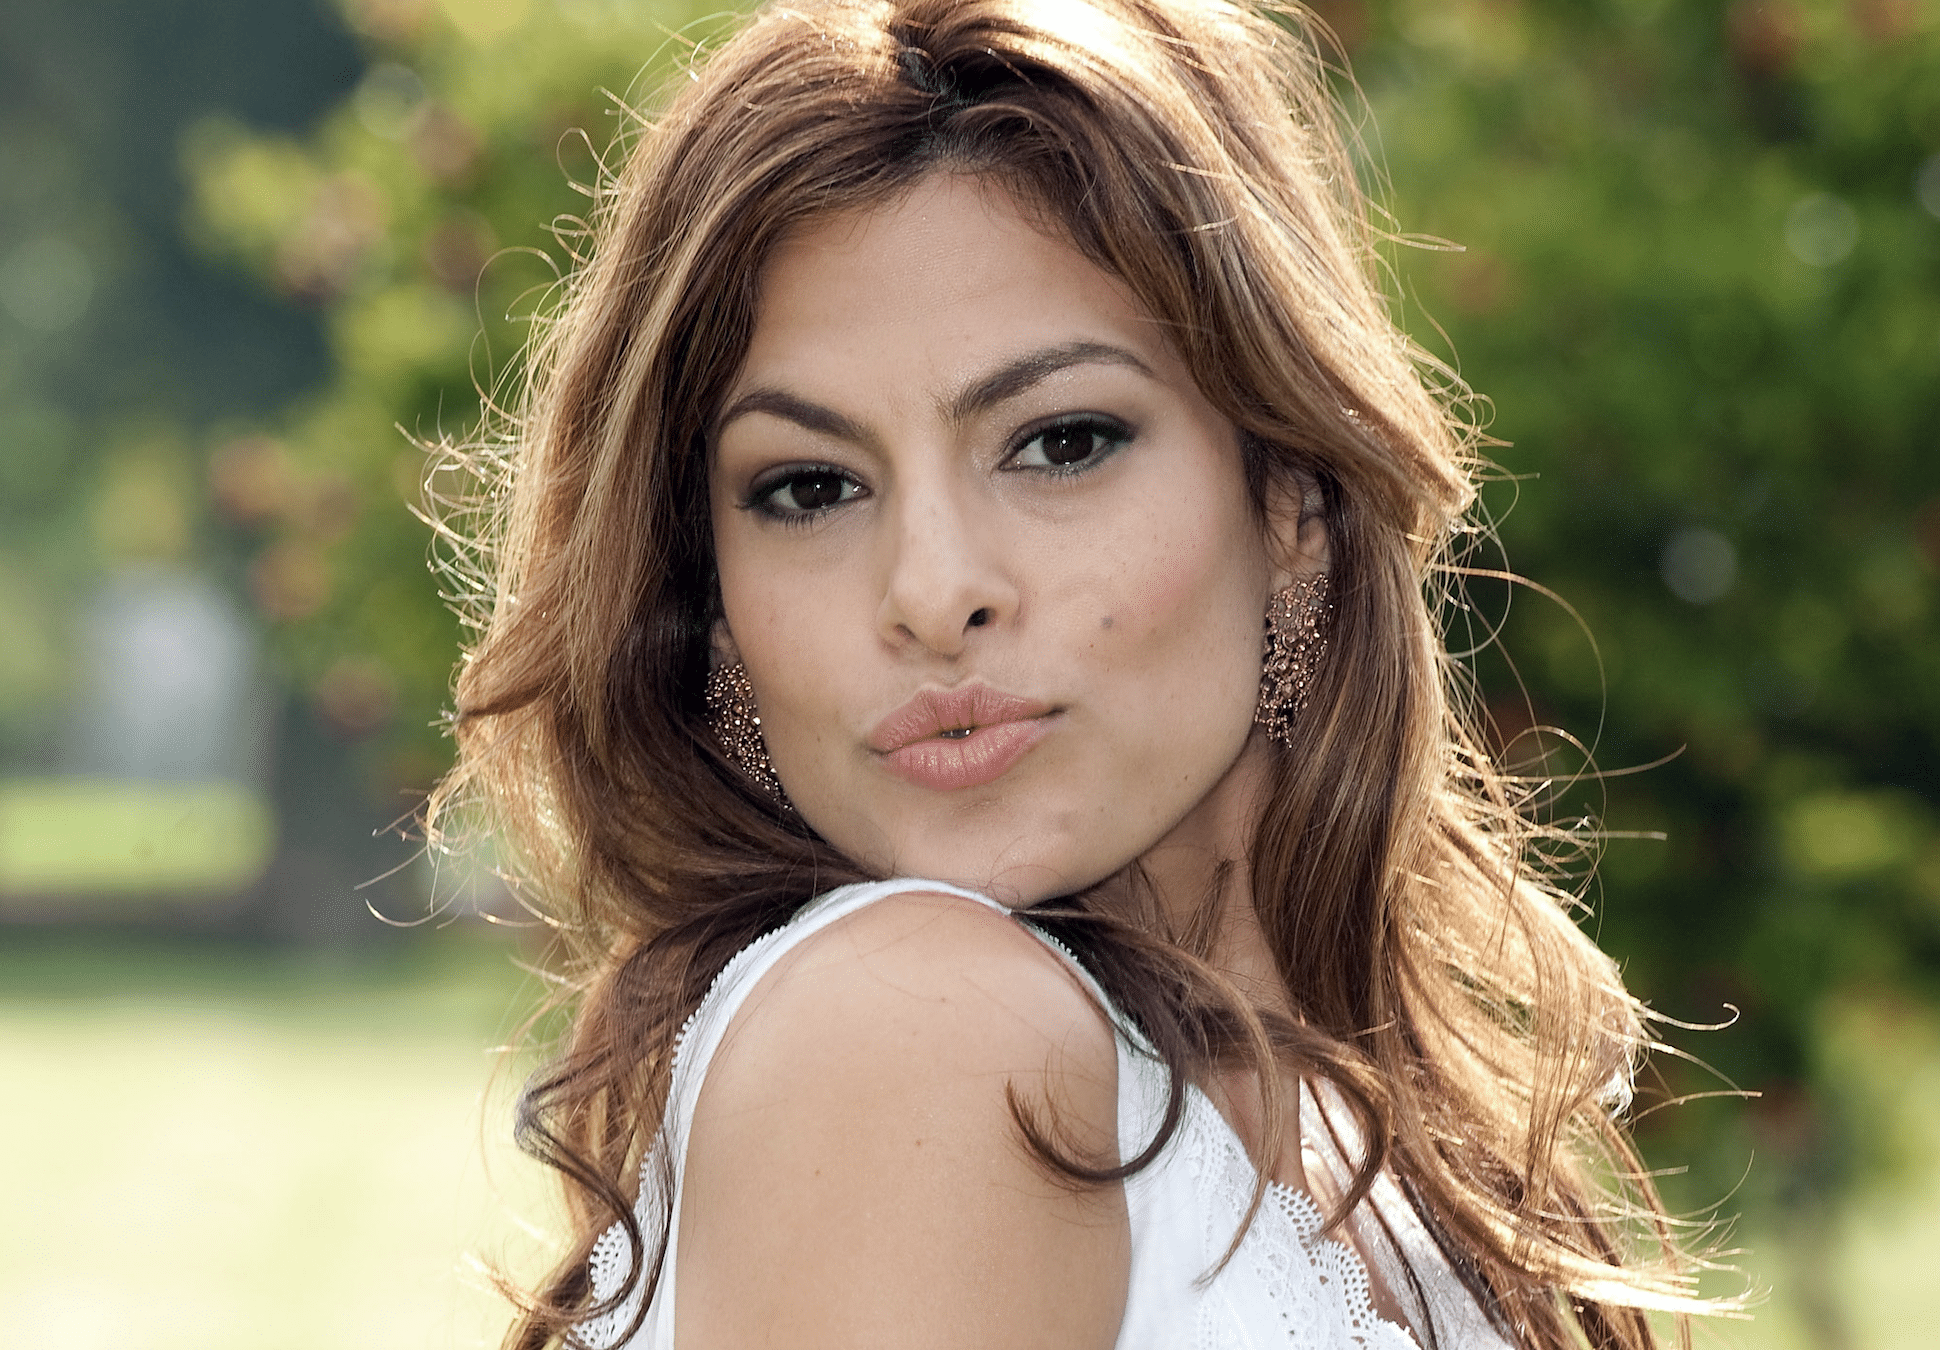 Eva Mendes Shared A Shocking Photo Of 'Being Tortured' While Receiving Mono-Thread Treatment For Her Neck